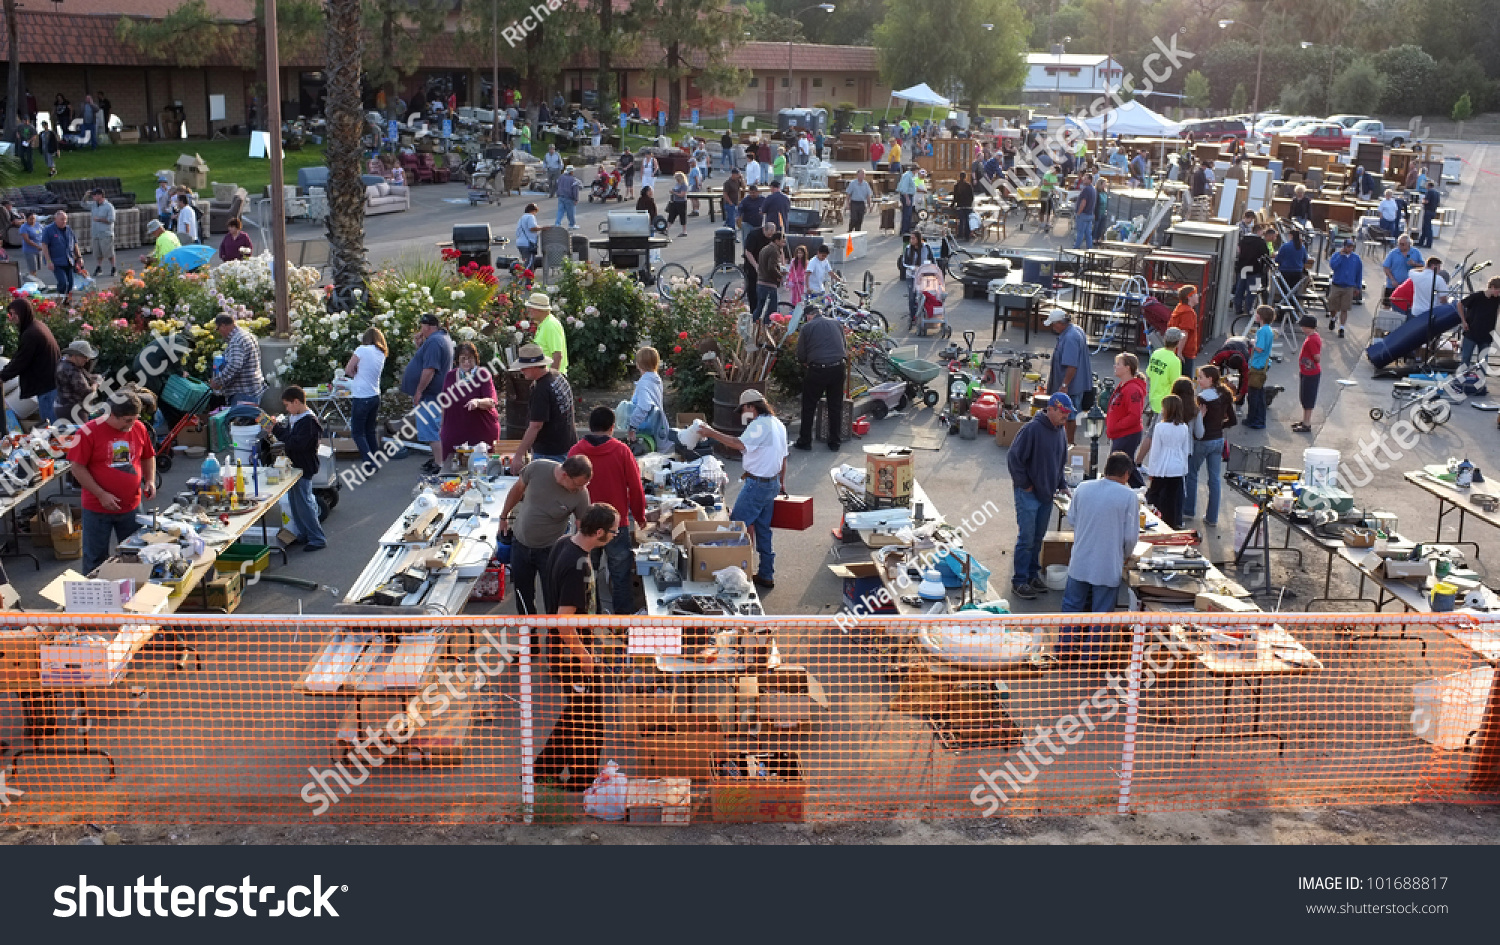 Bakersfield Ca May 4 Thousands Turn Out For Shopping